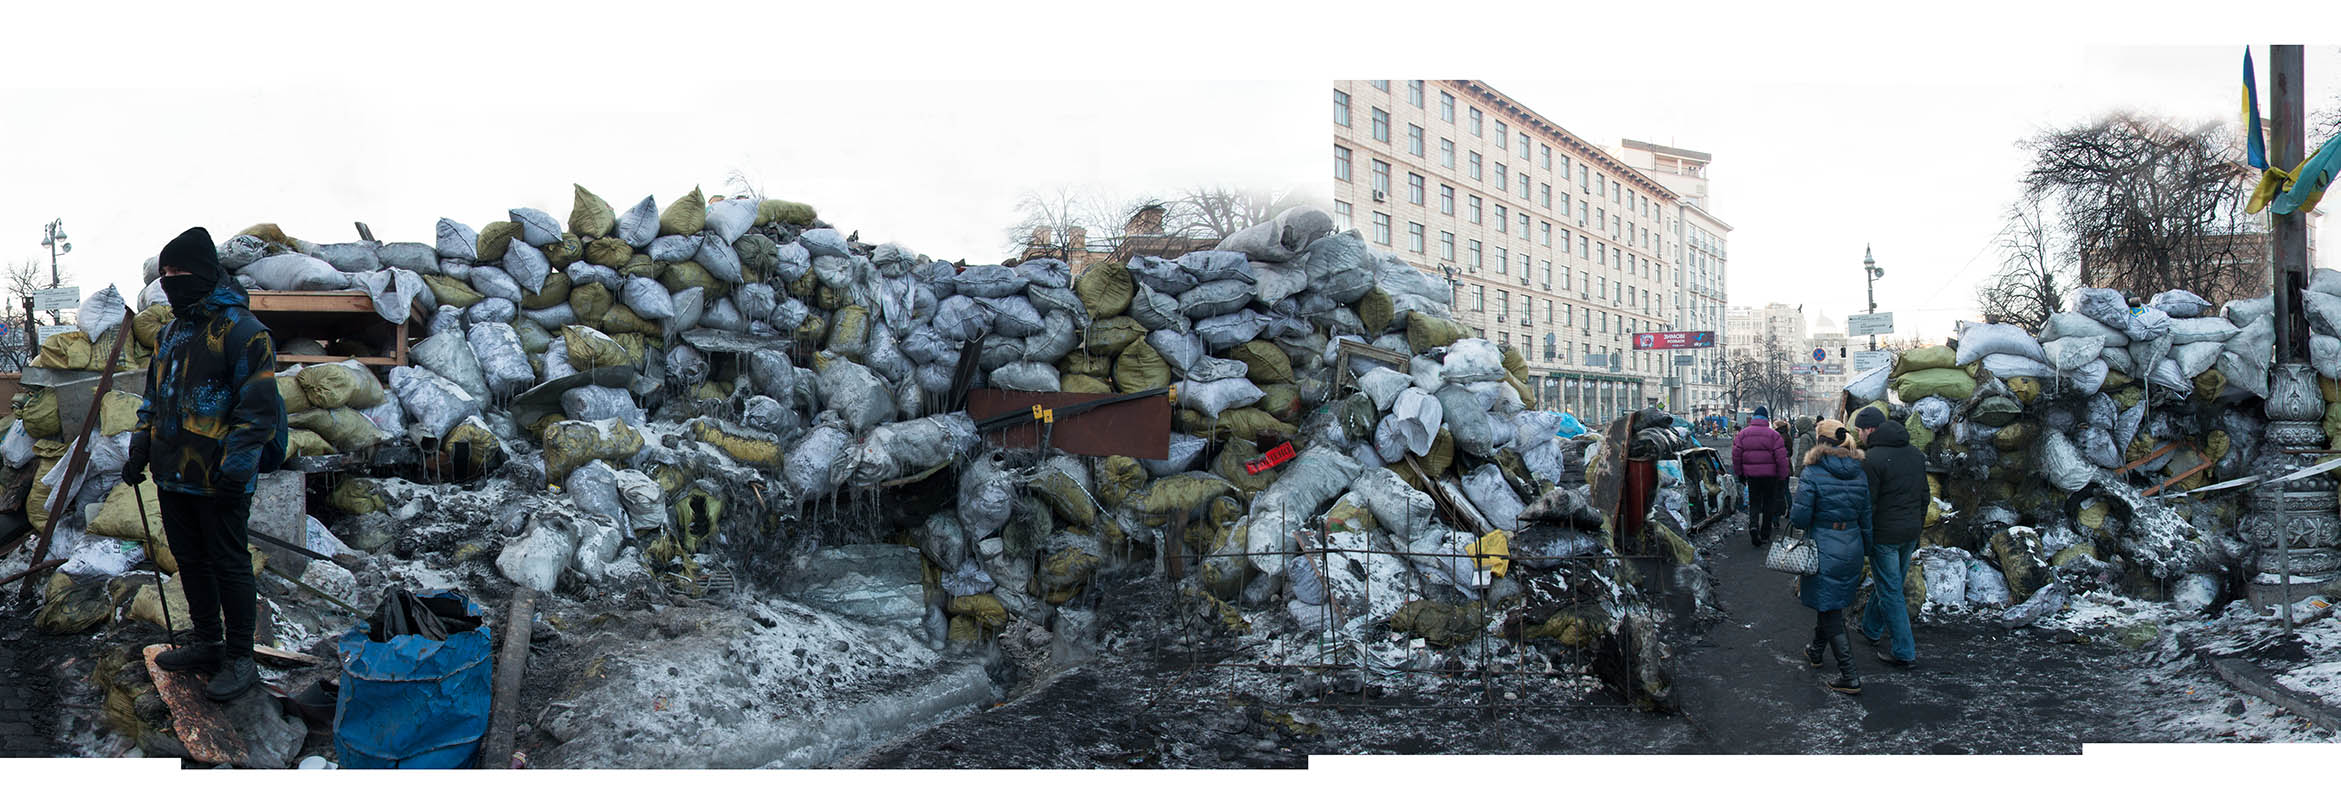 "Fragment of ""Barricade"" project"